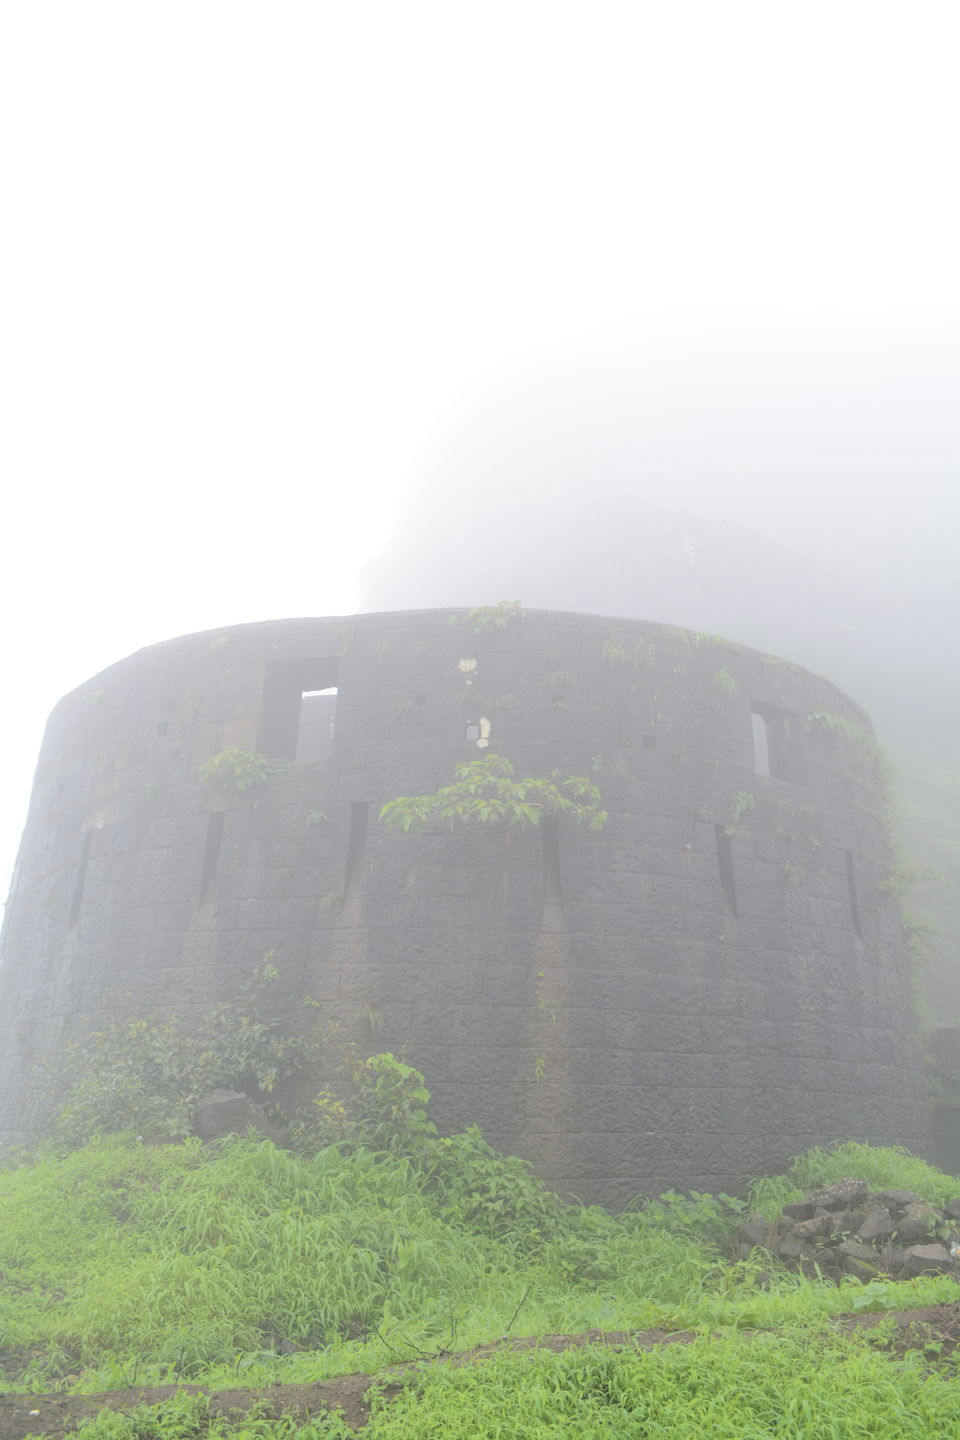 Photos of Monsoon trek to Lohgad fort , Lonavala 1/1 by Sonam Singh